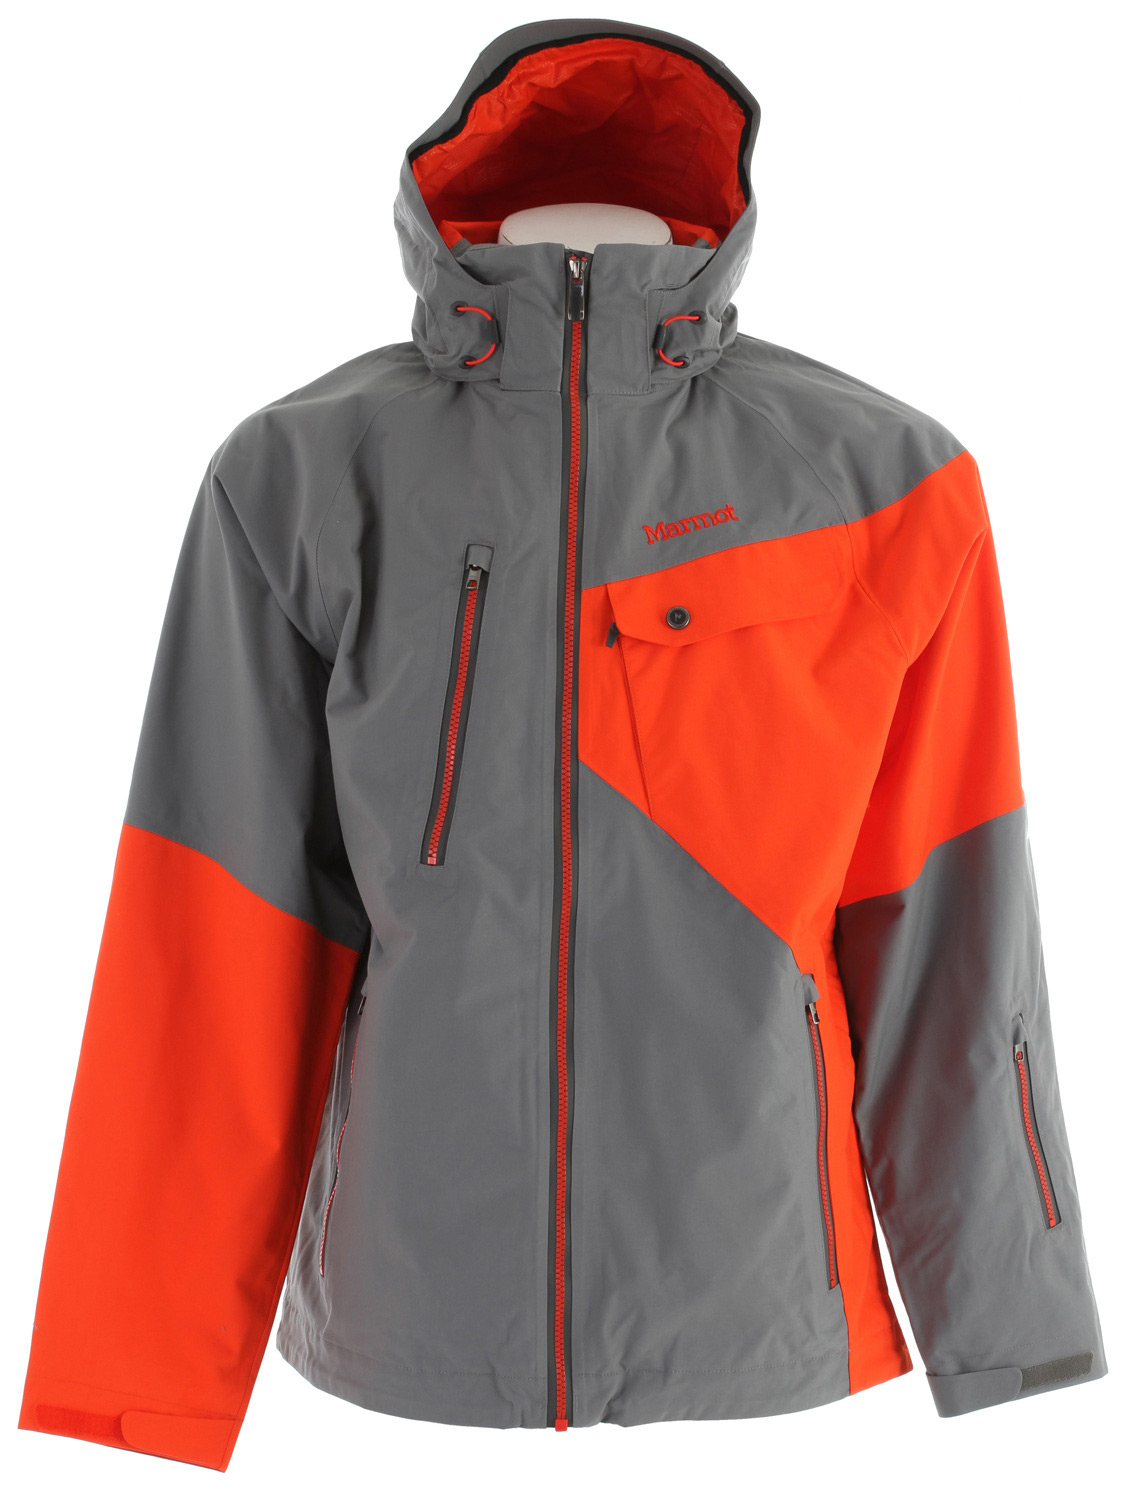 "Ski Key Features of the Marmot Mantra Ski Jacket: Weight 2lb 1.2oz (941g) Materials MemBrain 2L 100% Nylon 5.0 oz/yd Marmot MemBrain Waterproof/Breathable Fabric 100% seam taped 2-layer construction Zip-off Storm Hood with Laminated Brim Exposed Water Resistant Center Front Zipper Chest Pocket with Water-Resistant Zipper Flapped Chest Pockets Handwarmer Pockets with Water Resistant Zipper Waist Pass Pocket with Water Resistant Zip PitZips Zip-off Powder Skirt Zippered Sunglass Pocket Mesh Gear Pocket Mesh Goggle Pocket Interior Media Pocket HD Brushed Tricot Collar and Shoulder Lining Elastic Draw Cord Hem DriClime Lined Collar and Chin Guard Adjustable Velcro Cuff Angel-Wing Movement 30"" Center Back Length for Size Medium - $194.95"